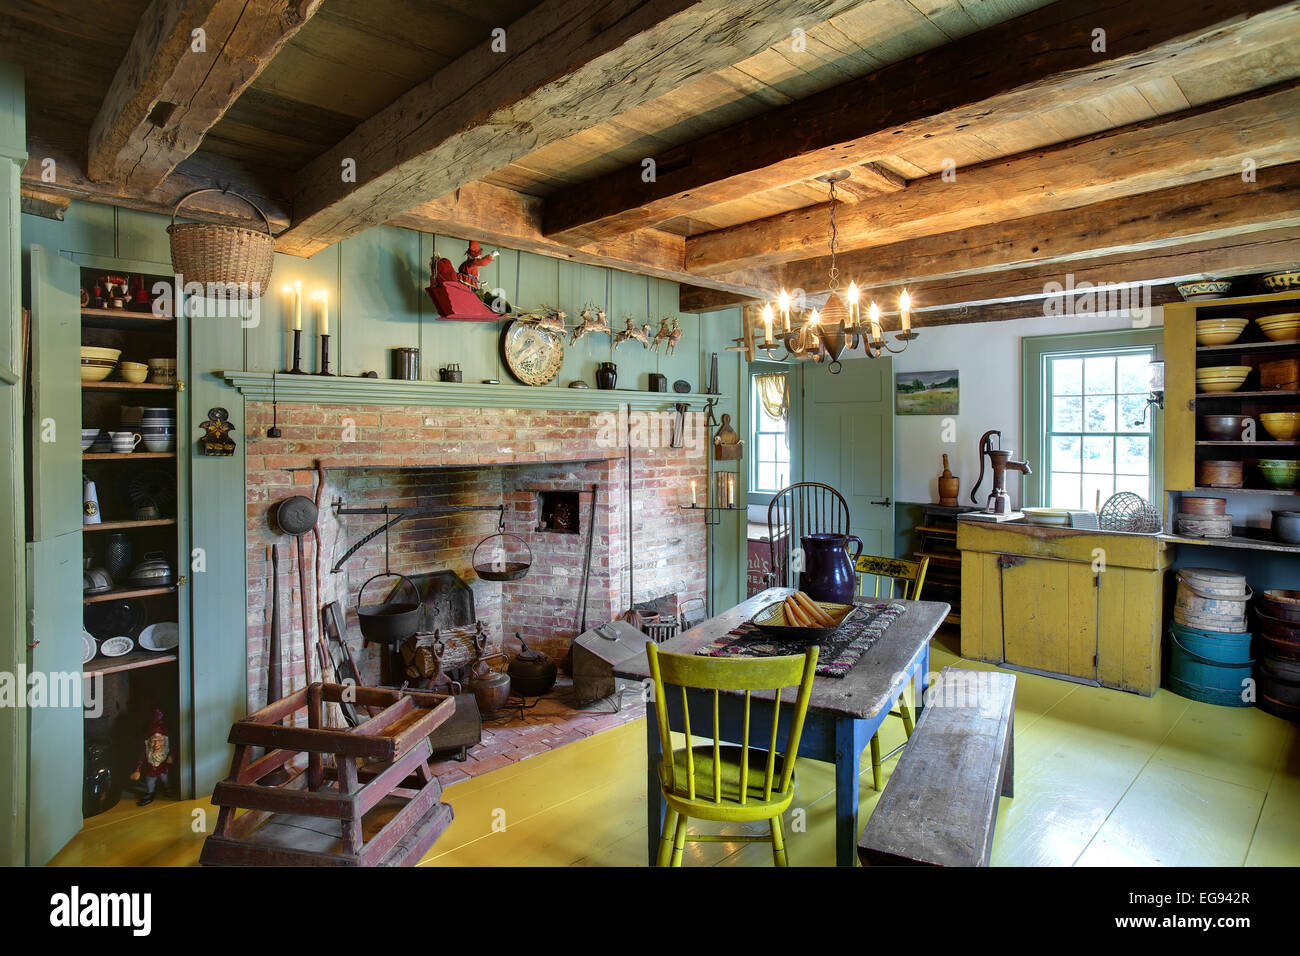 The Kitchen Dining Room And Fireplace In A Restored 17th Century